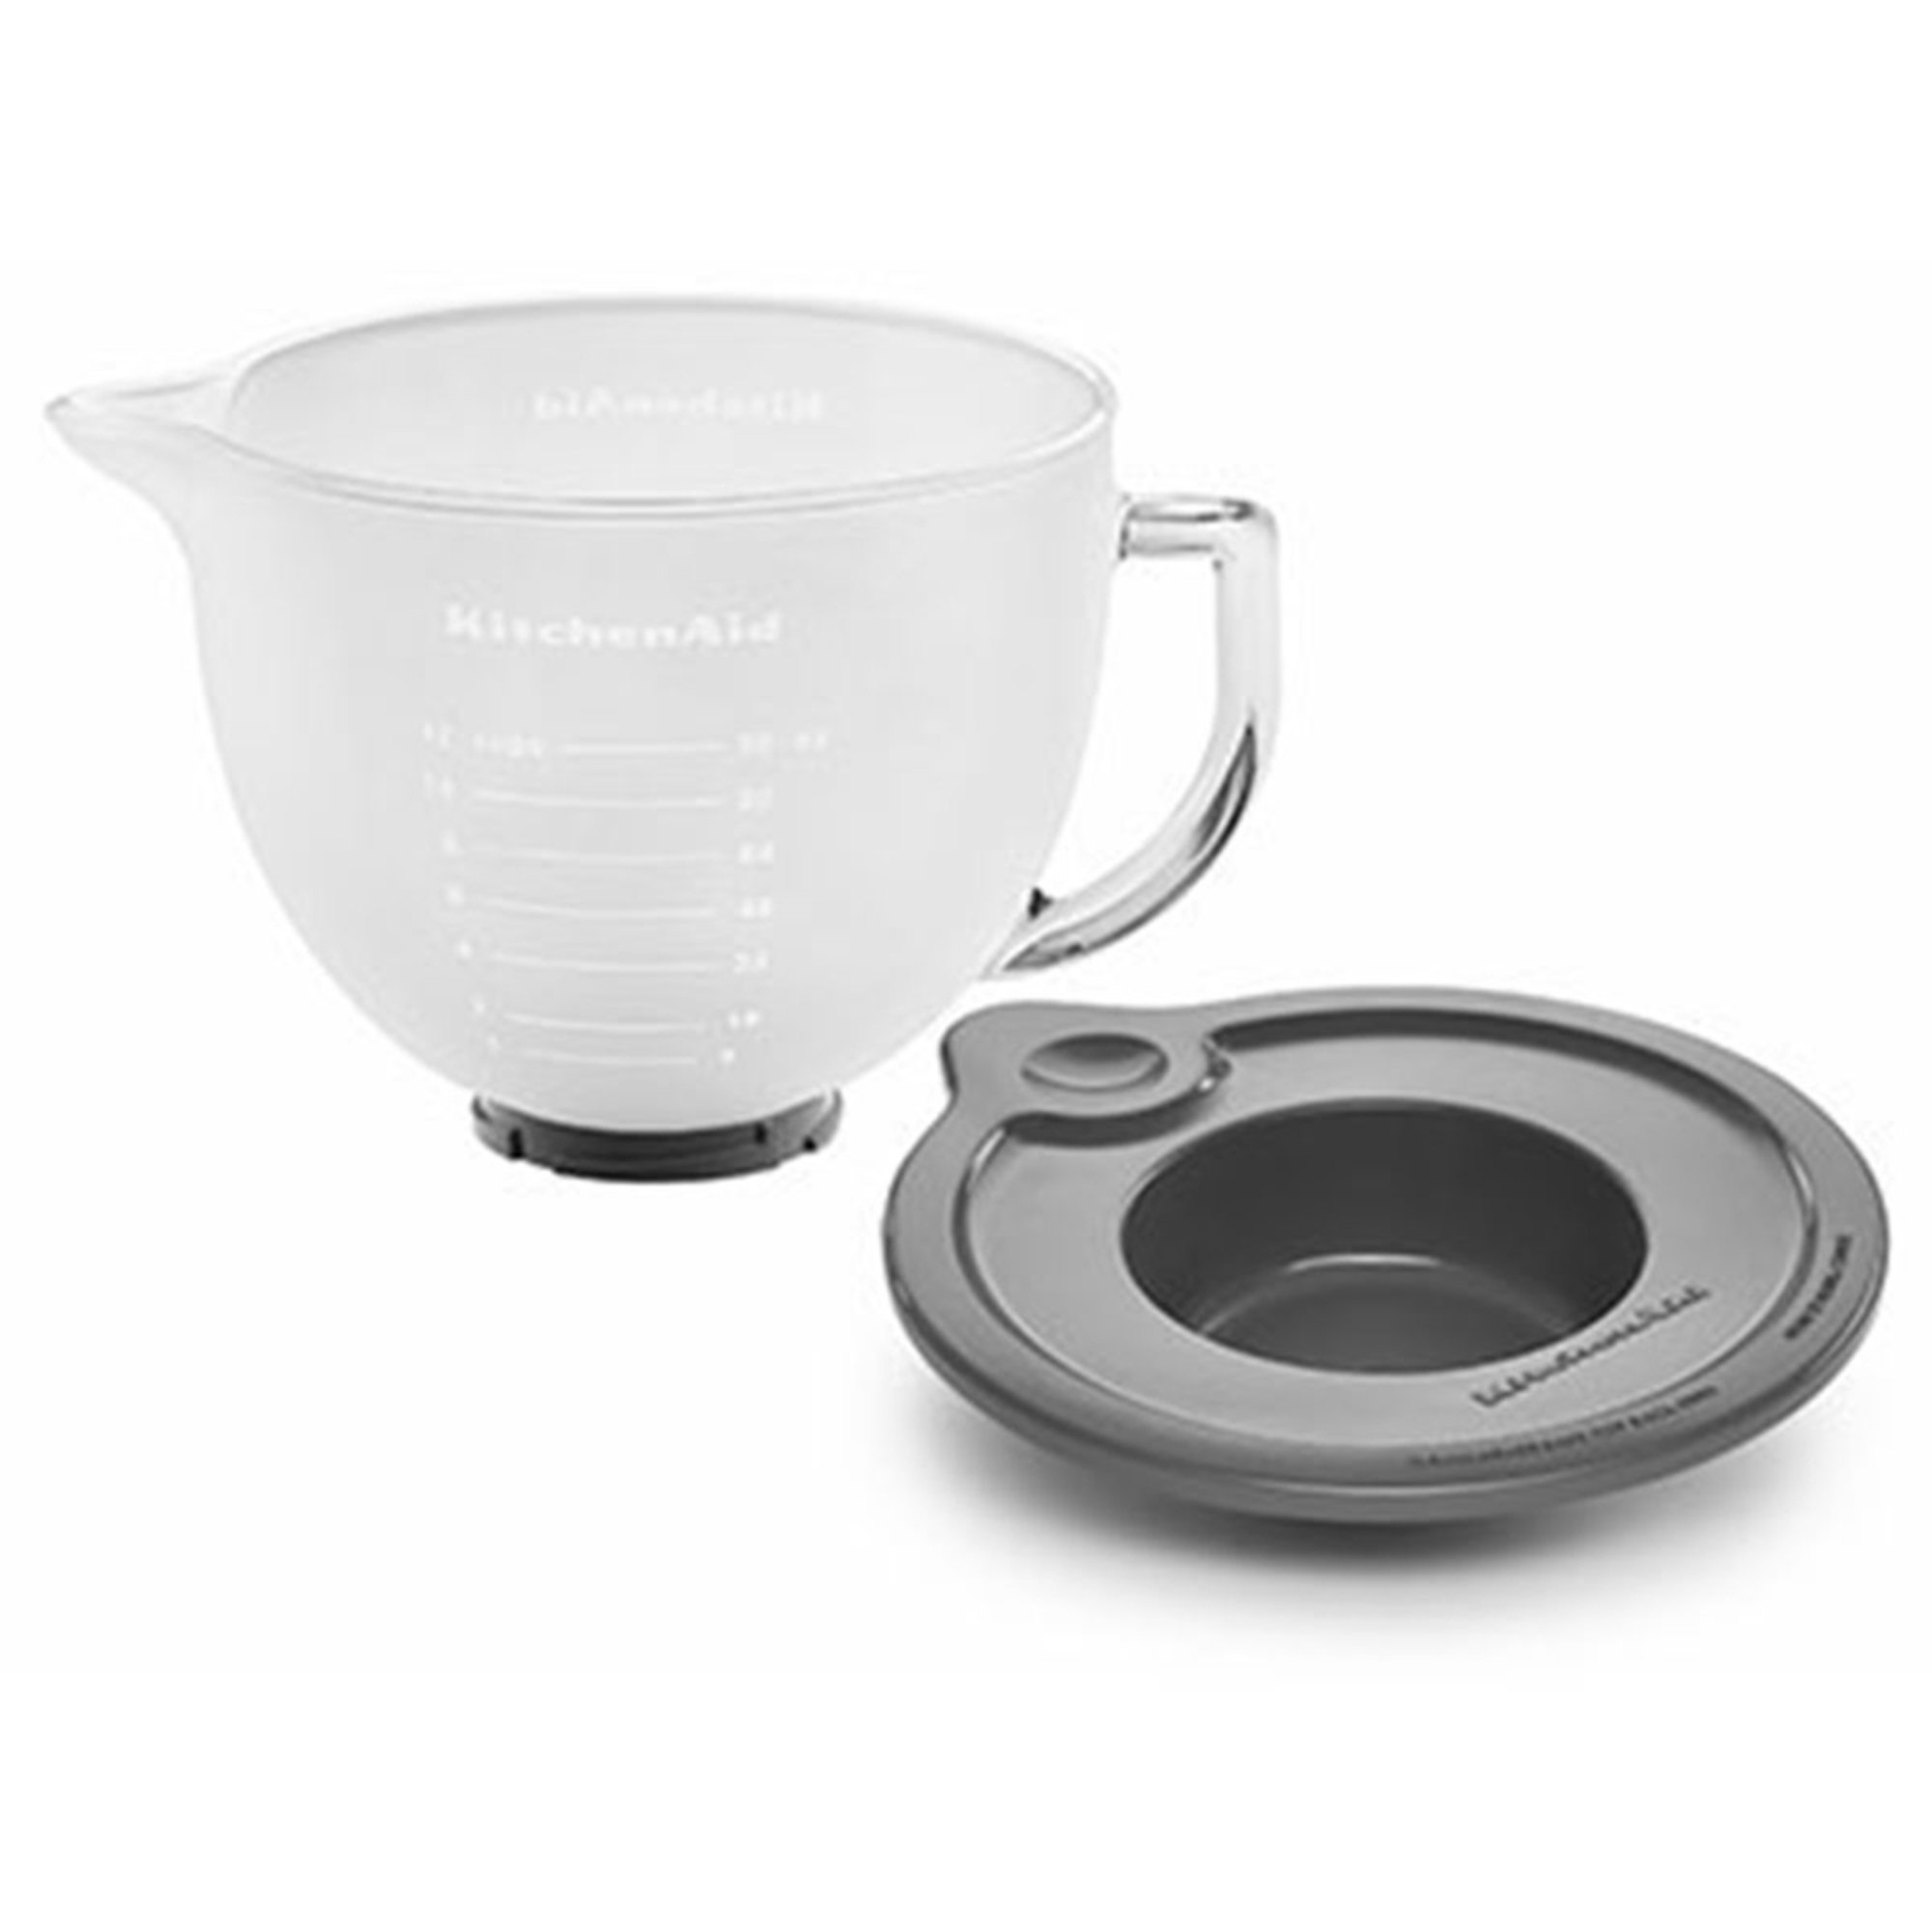 Kitchenaid 5 quart frosted glass mixing measuring bowl for tilt head stand mixer k5gbf - Kitchenaid glass bowl attachment ...